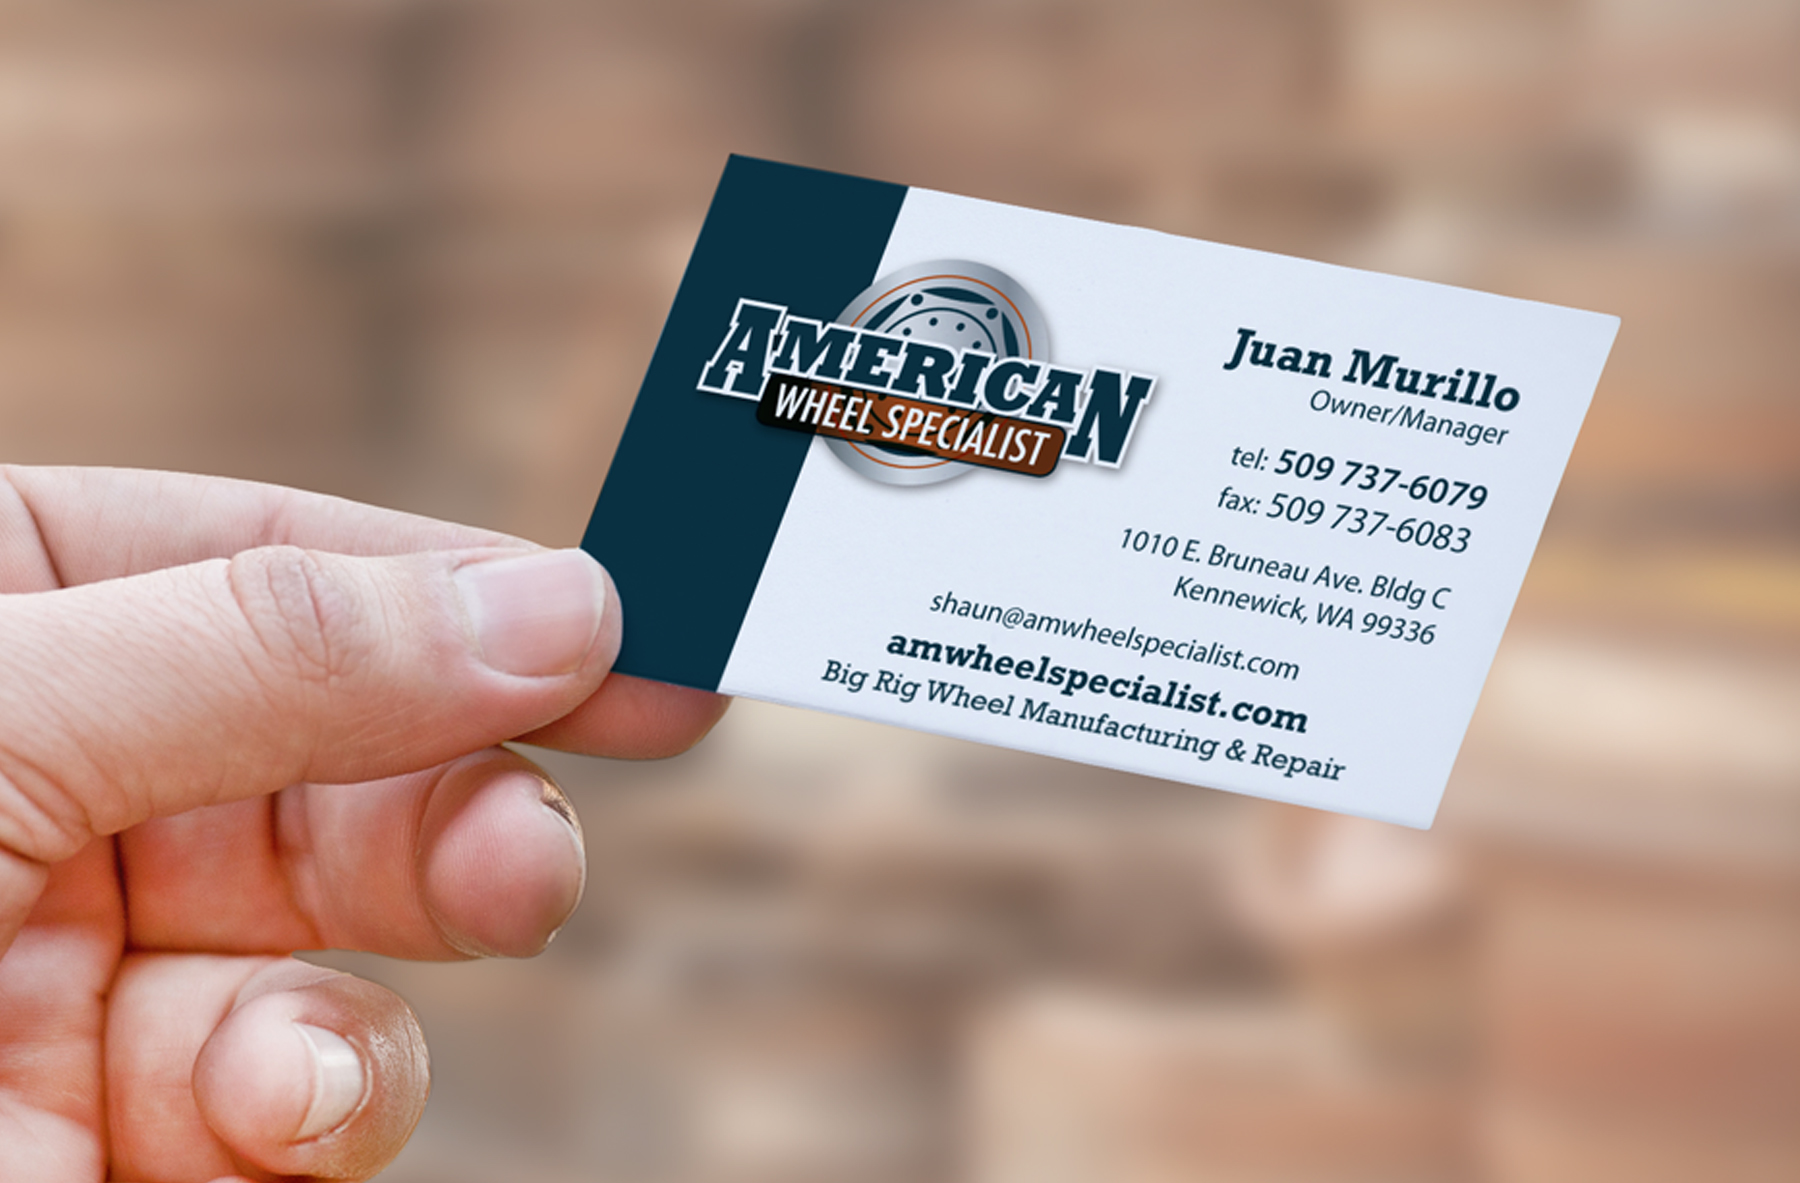 American Wheel Specialist Business Cards - Artmil